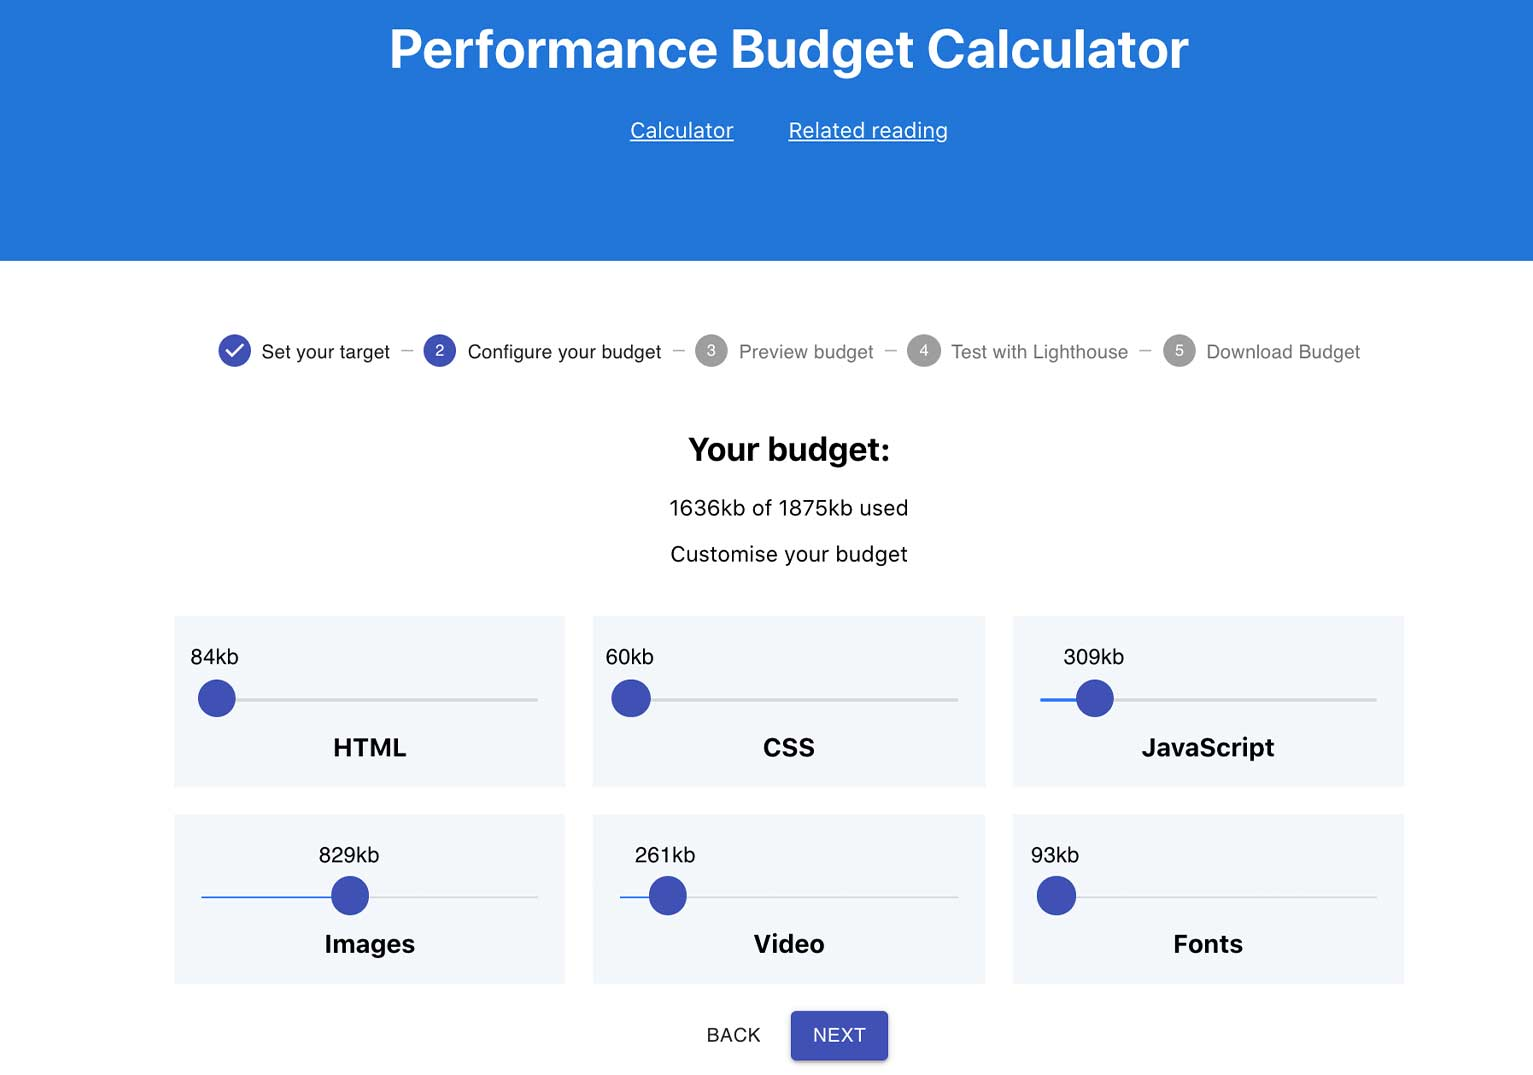 Performance Budget Calculator can help you balance the content on your website based on a targeted load speed so it can run optimally.